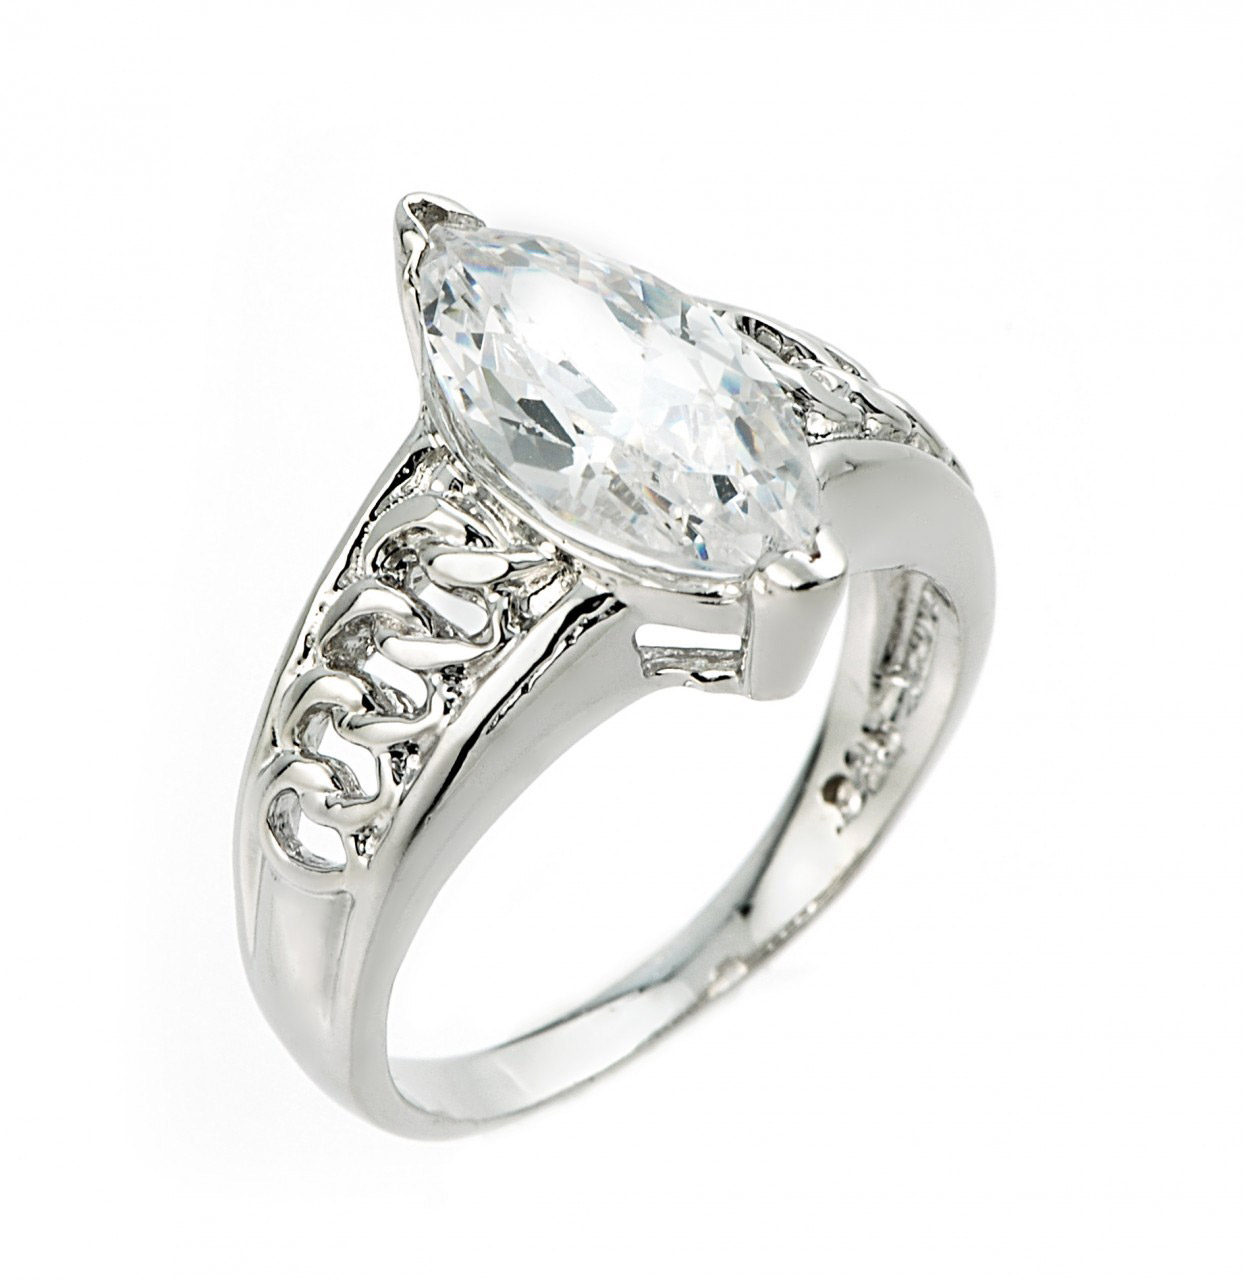 CZ Elegant Engagement Ring in Sterling Silver